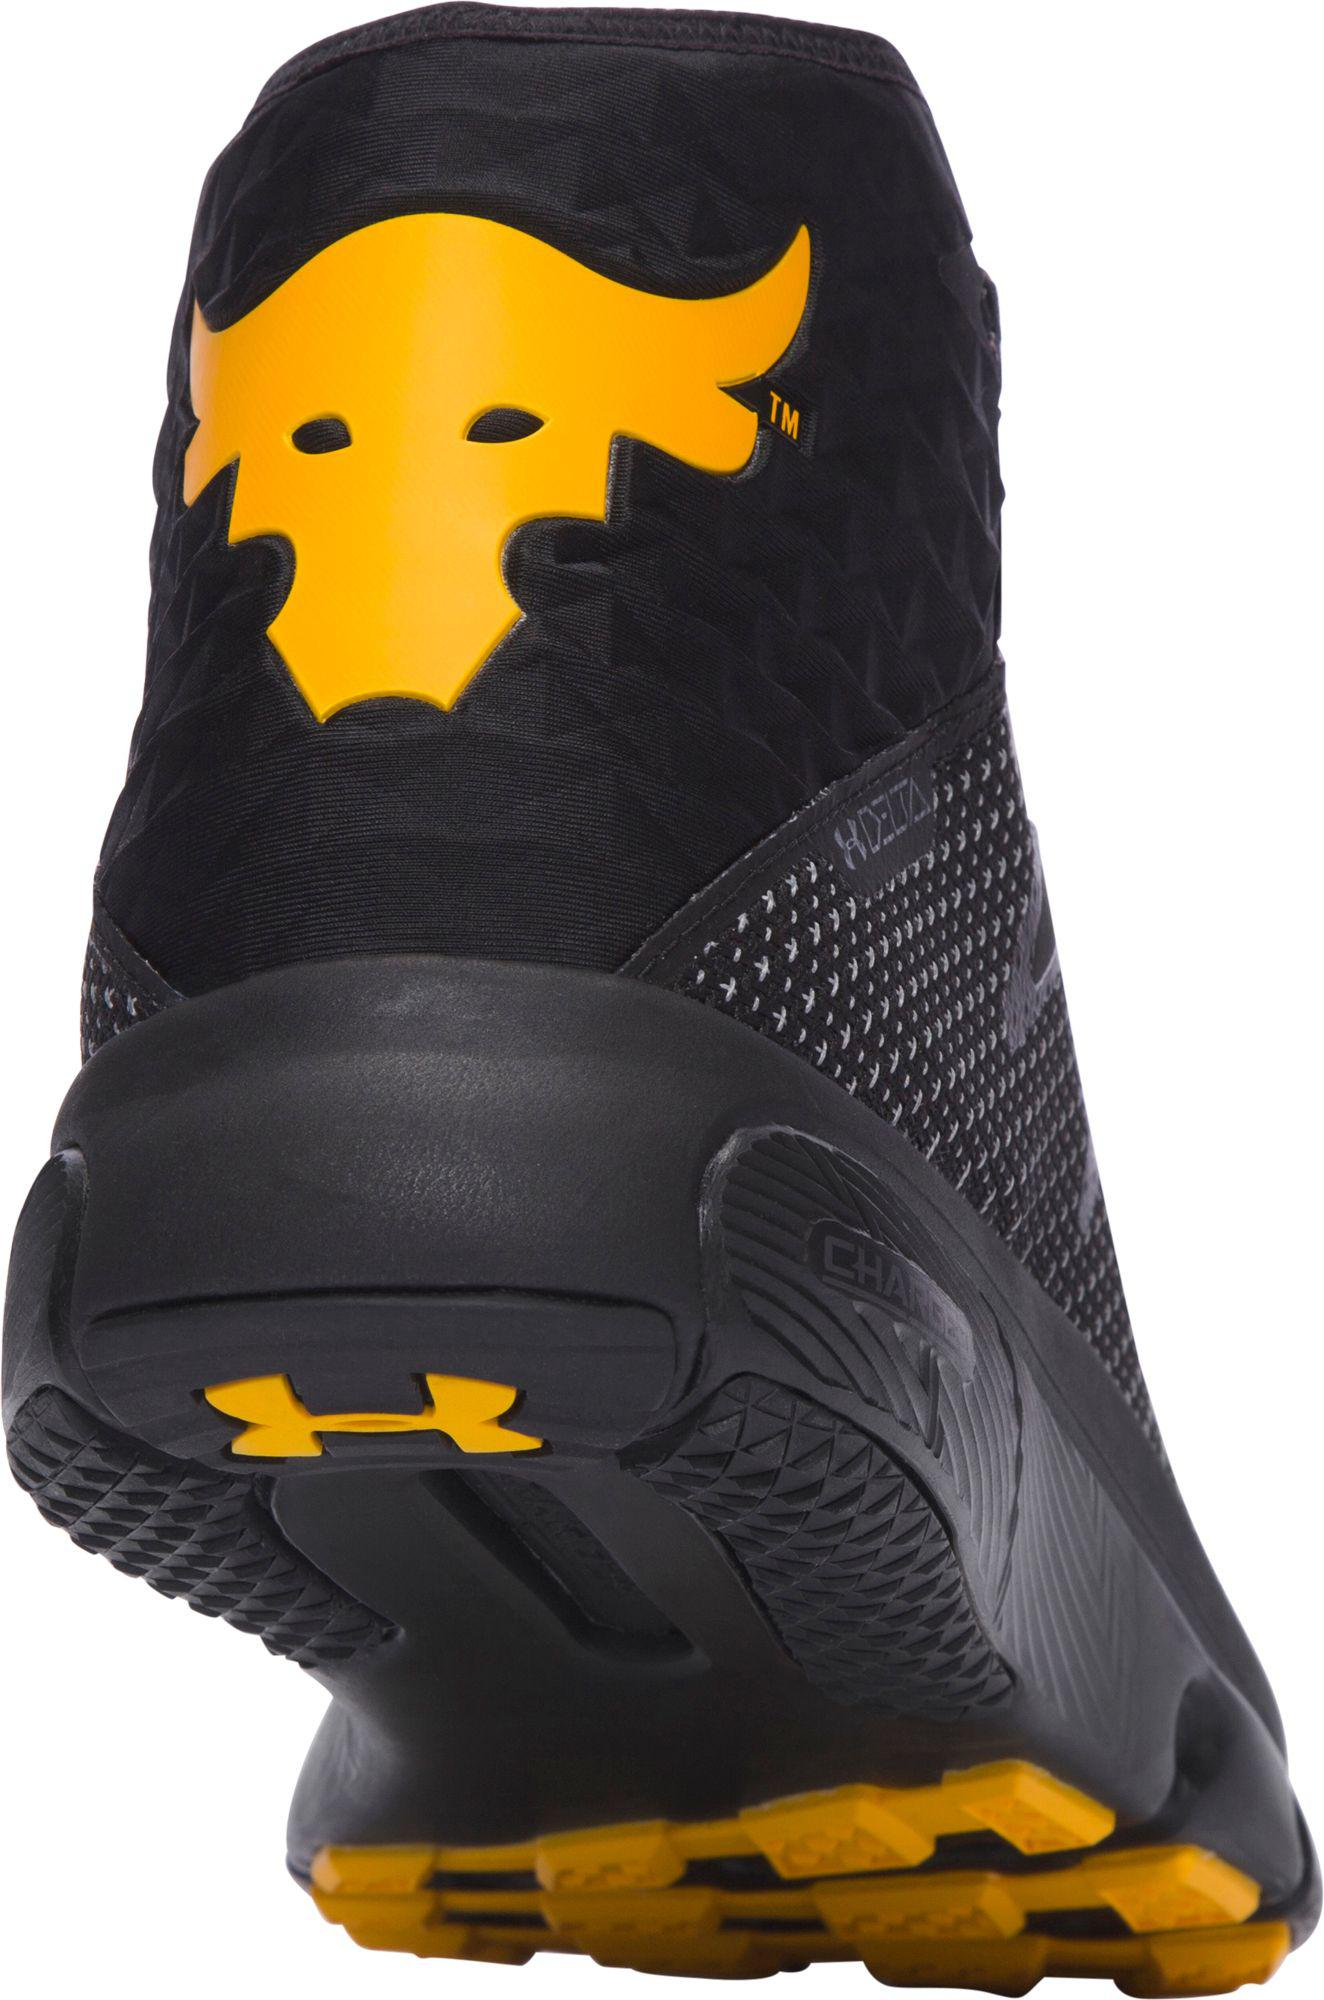 Under Armour Rubber Project Rock